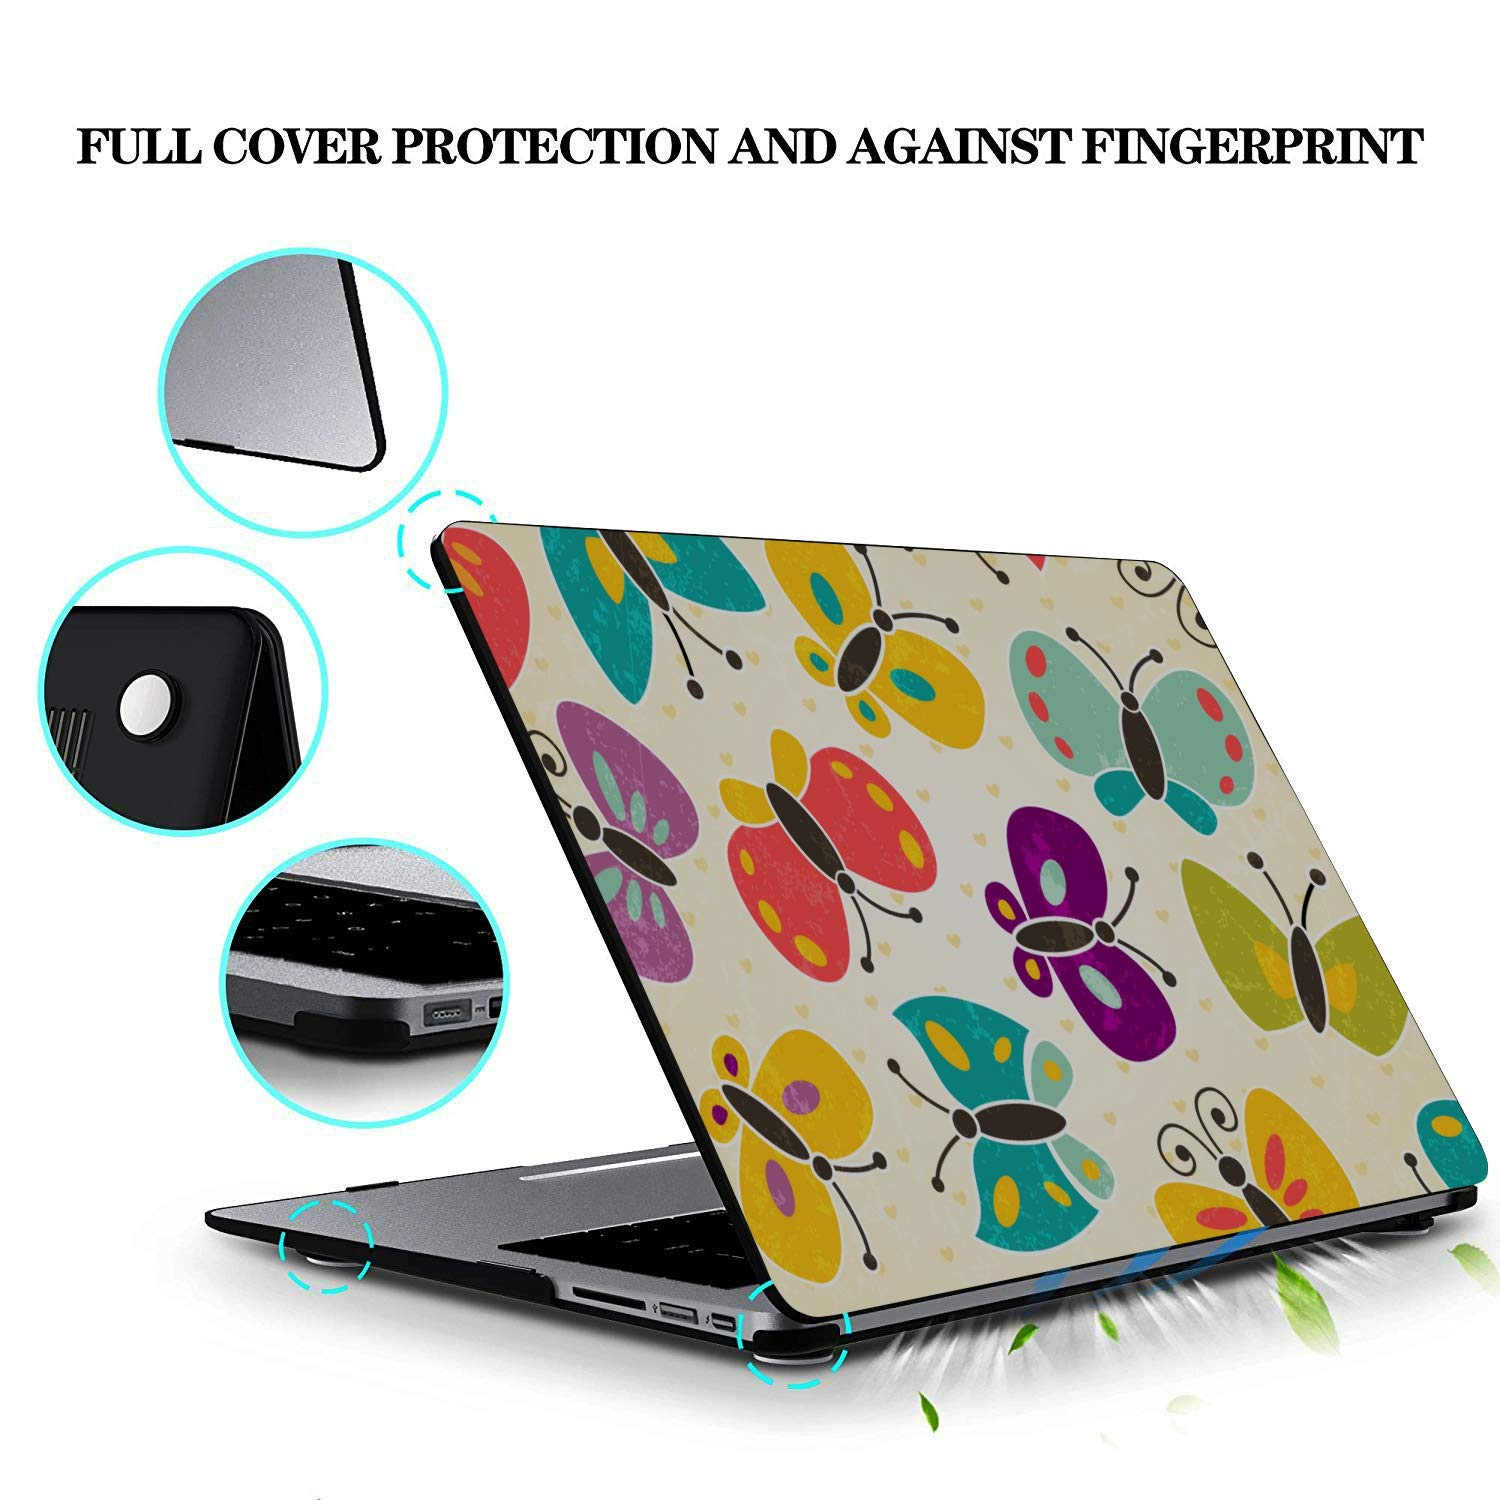 15 Inch Laptop Cover Spring Cute Butterfly Bee Flower Plastic Hard Shell Compatible Mac Air 11 Pro 13 15 MacBook Cover 15 Inch Protection for MacBook 2016-2019 Version